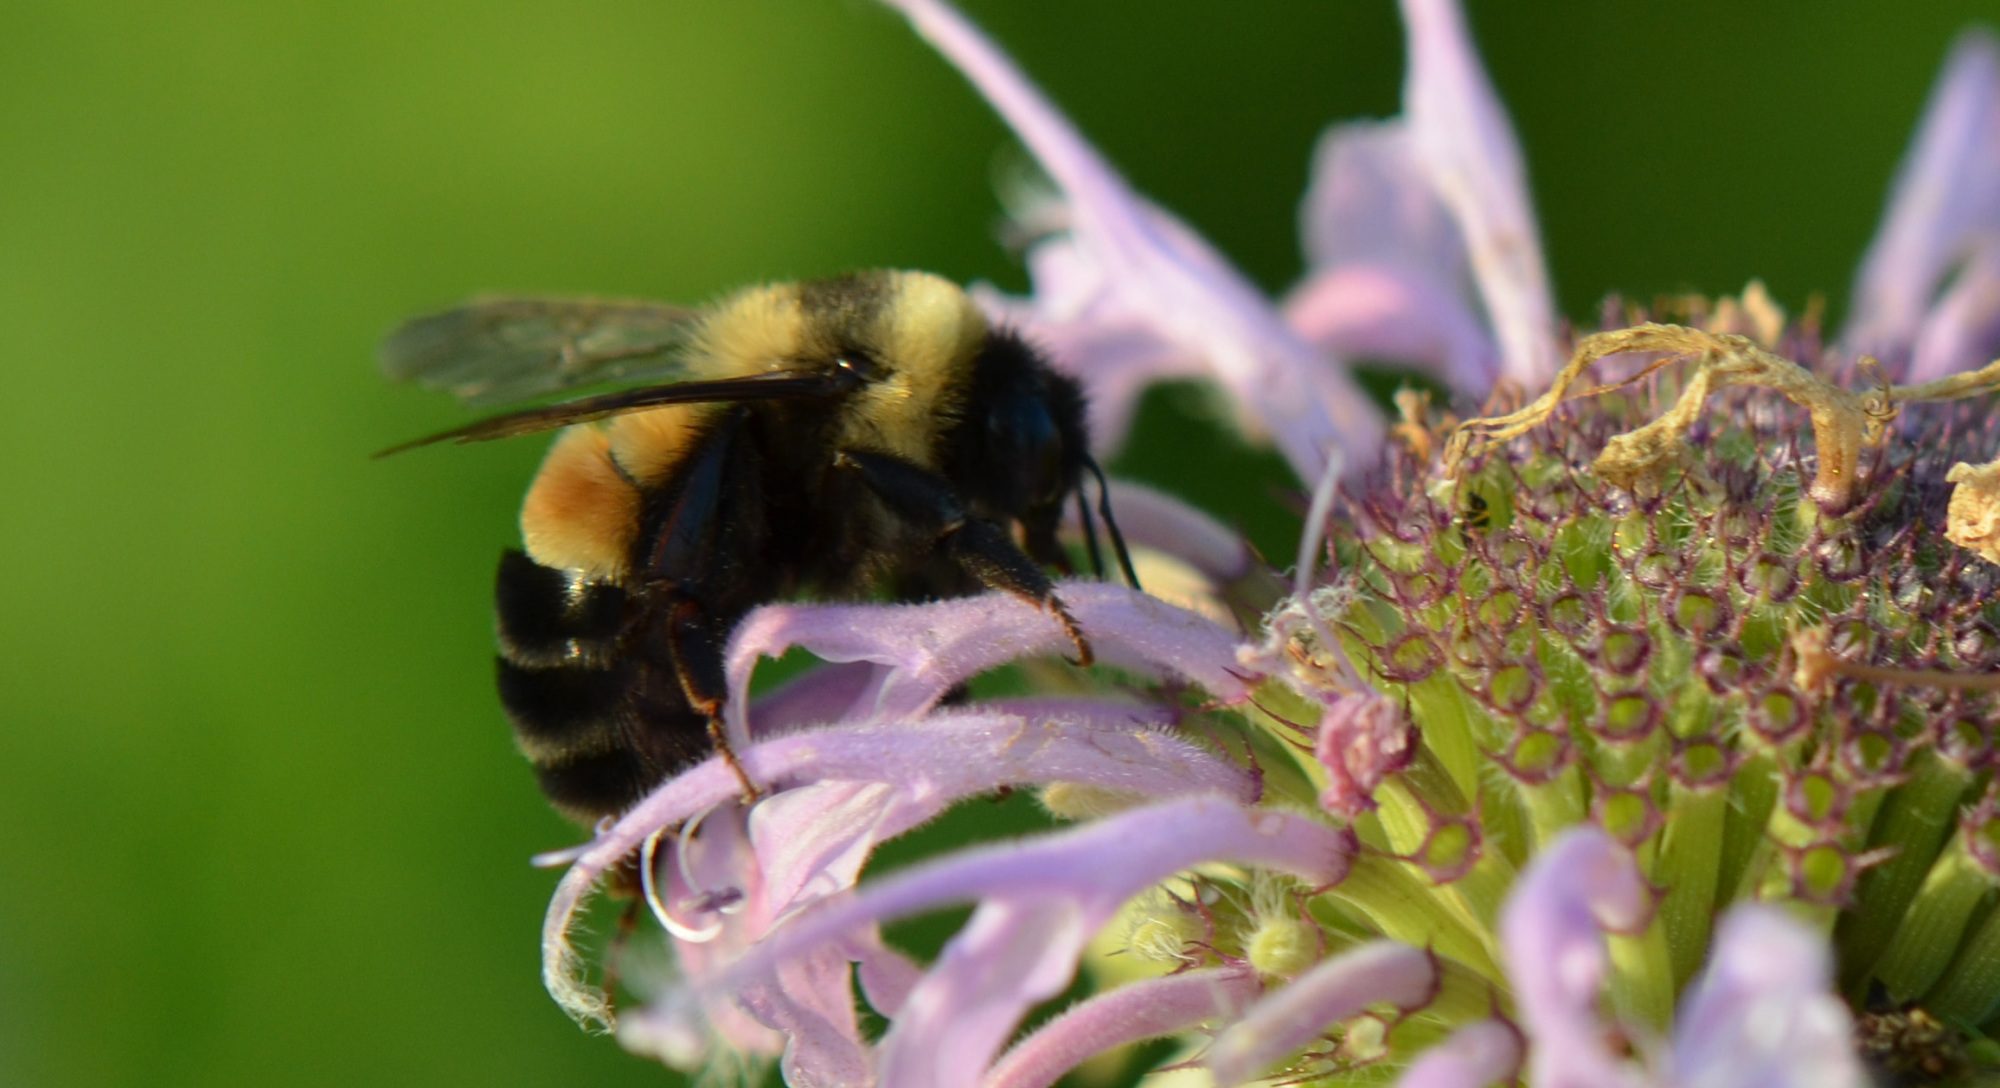 Rusty_Patched_Bumble_Bee_28971822177.jpg